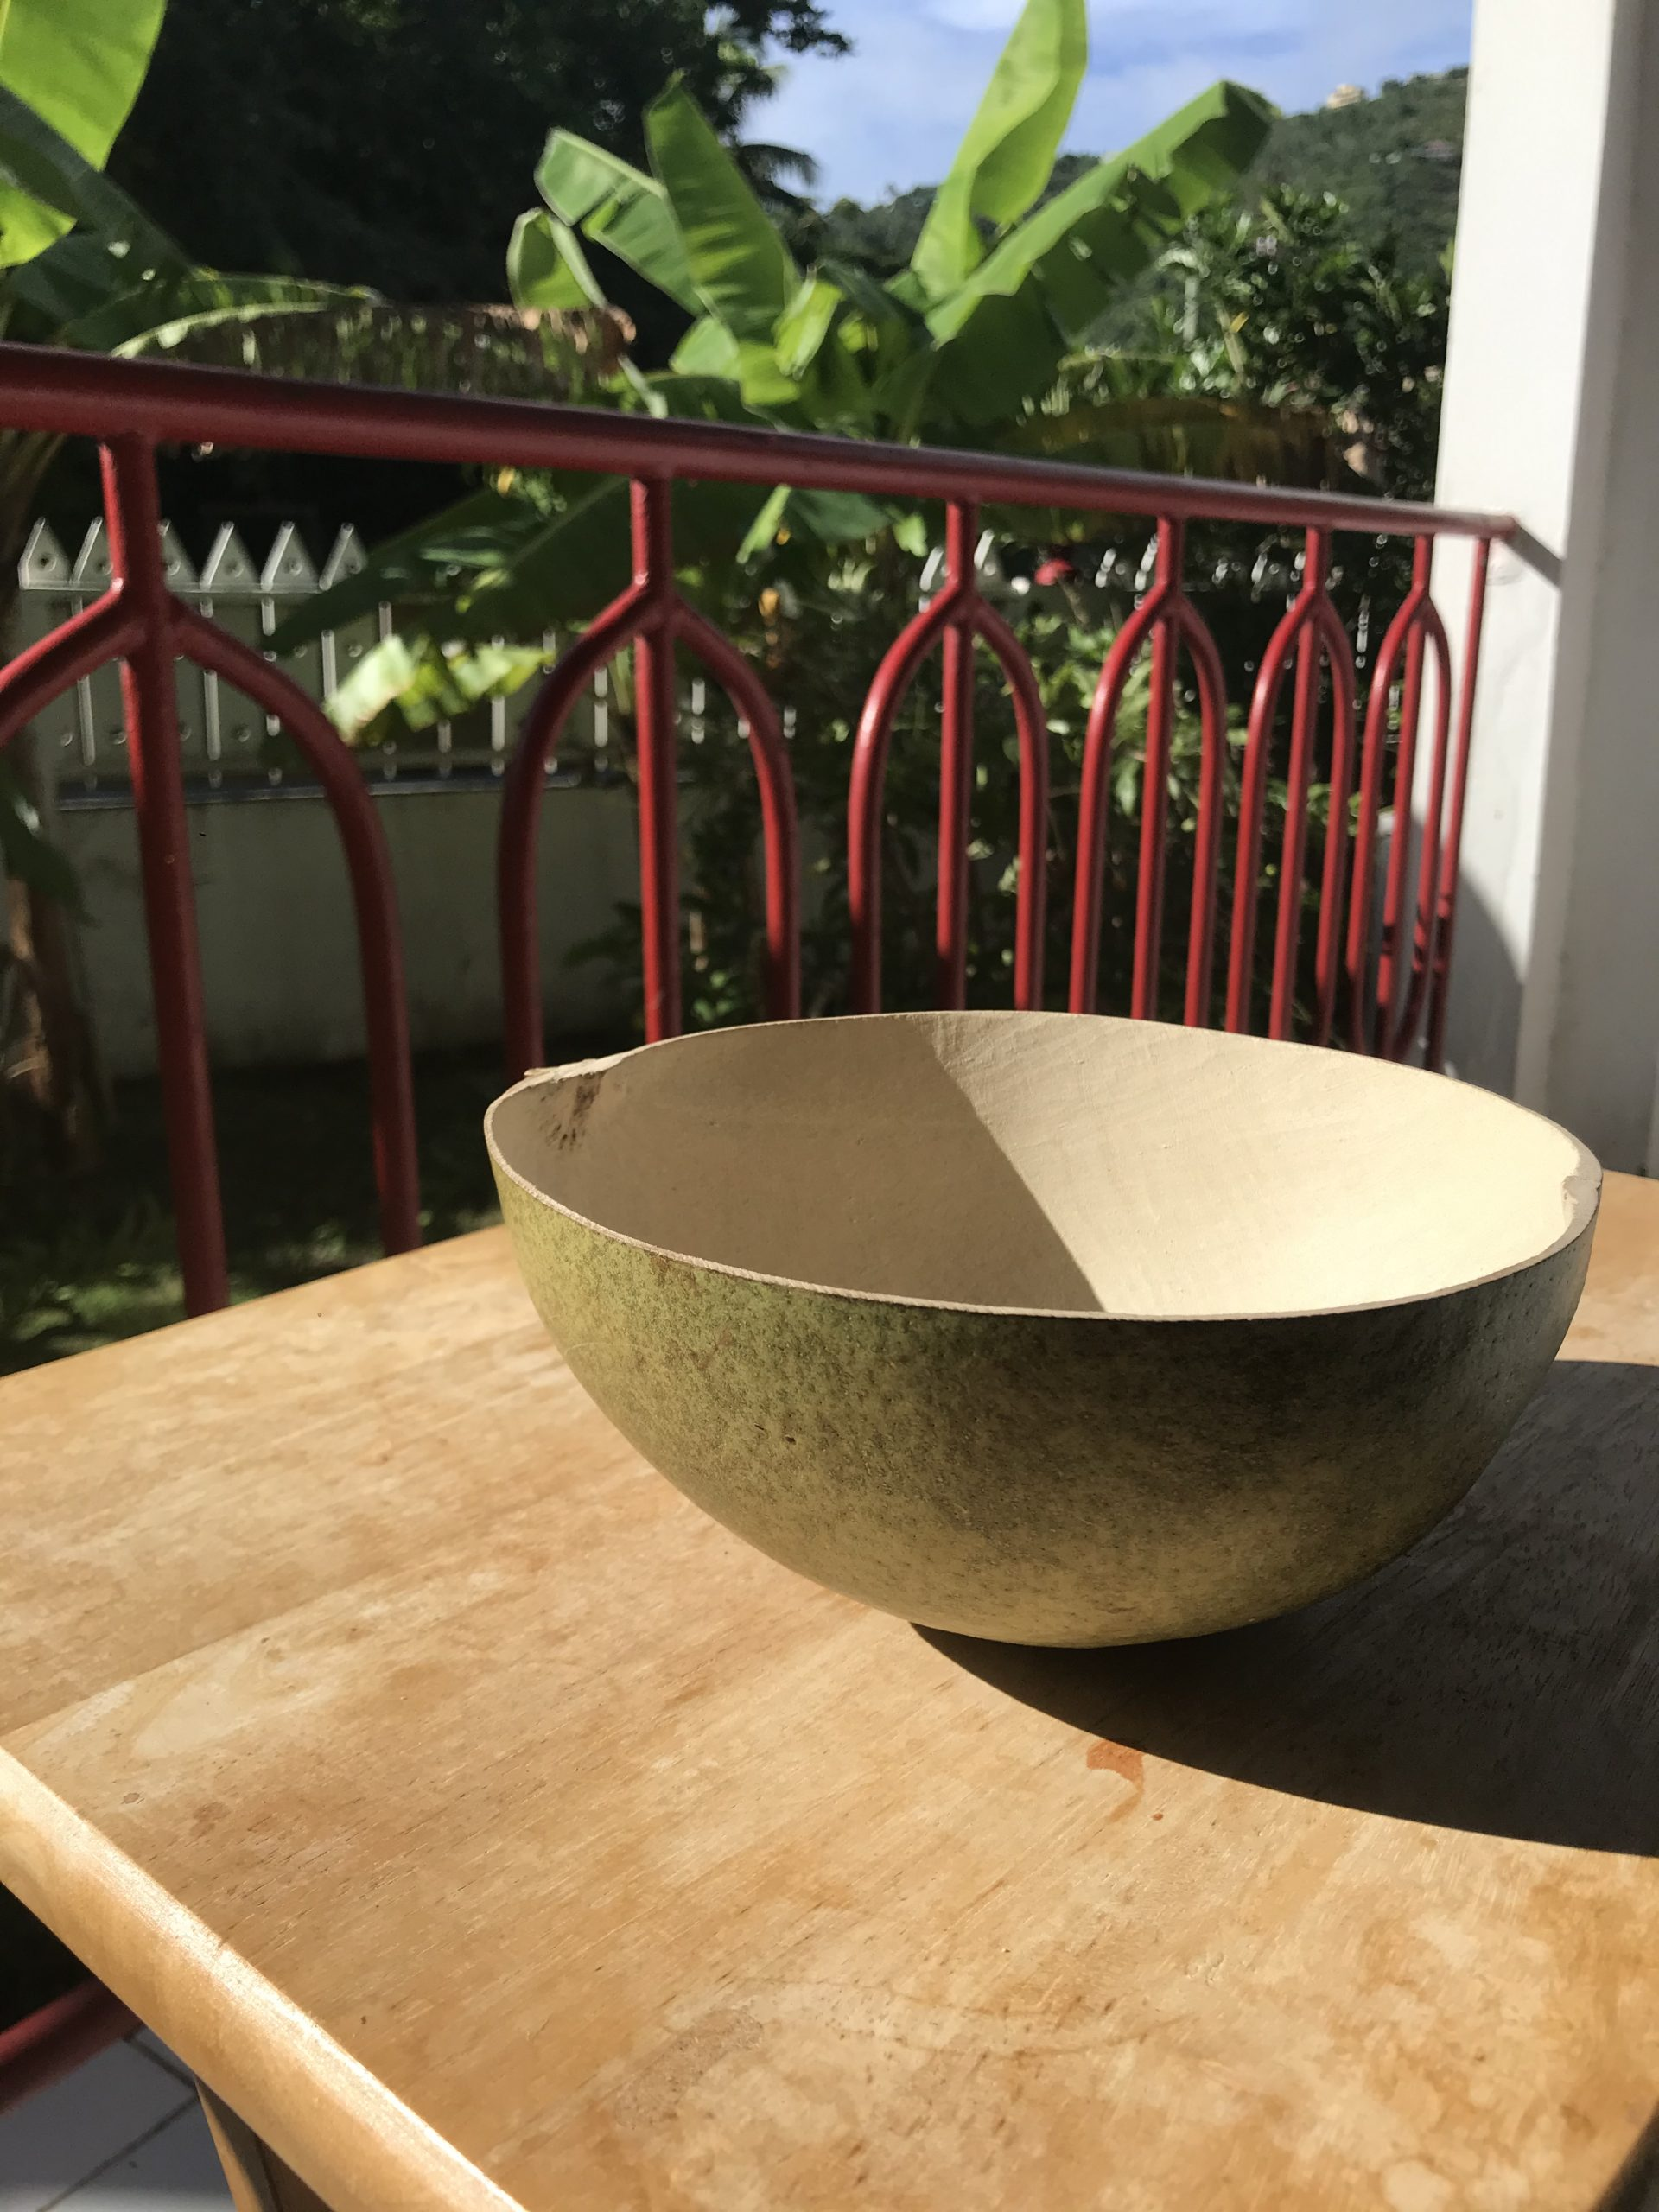 Calabash Bowls and Red Mangroves; Photos from Tortola